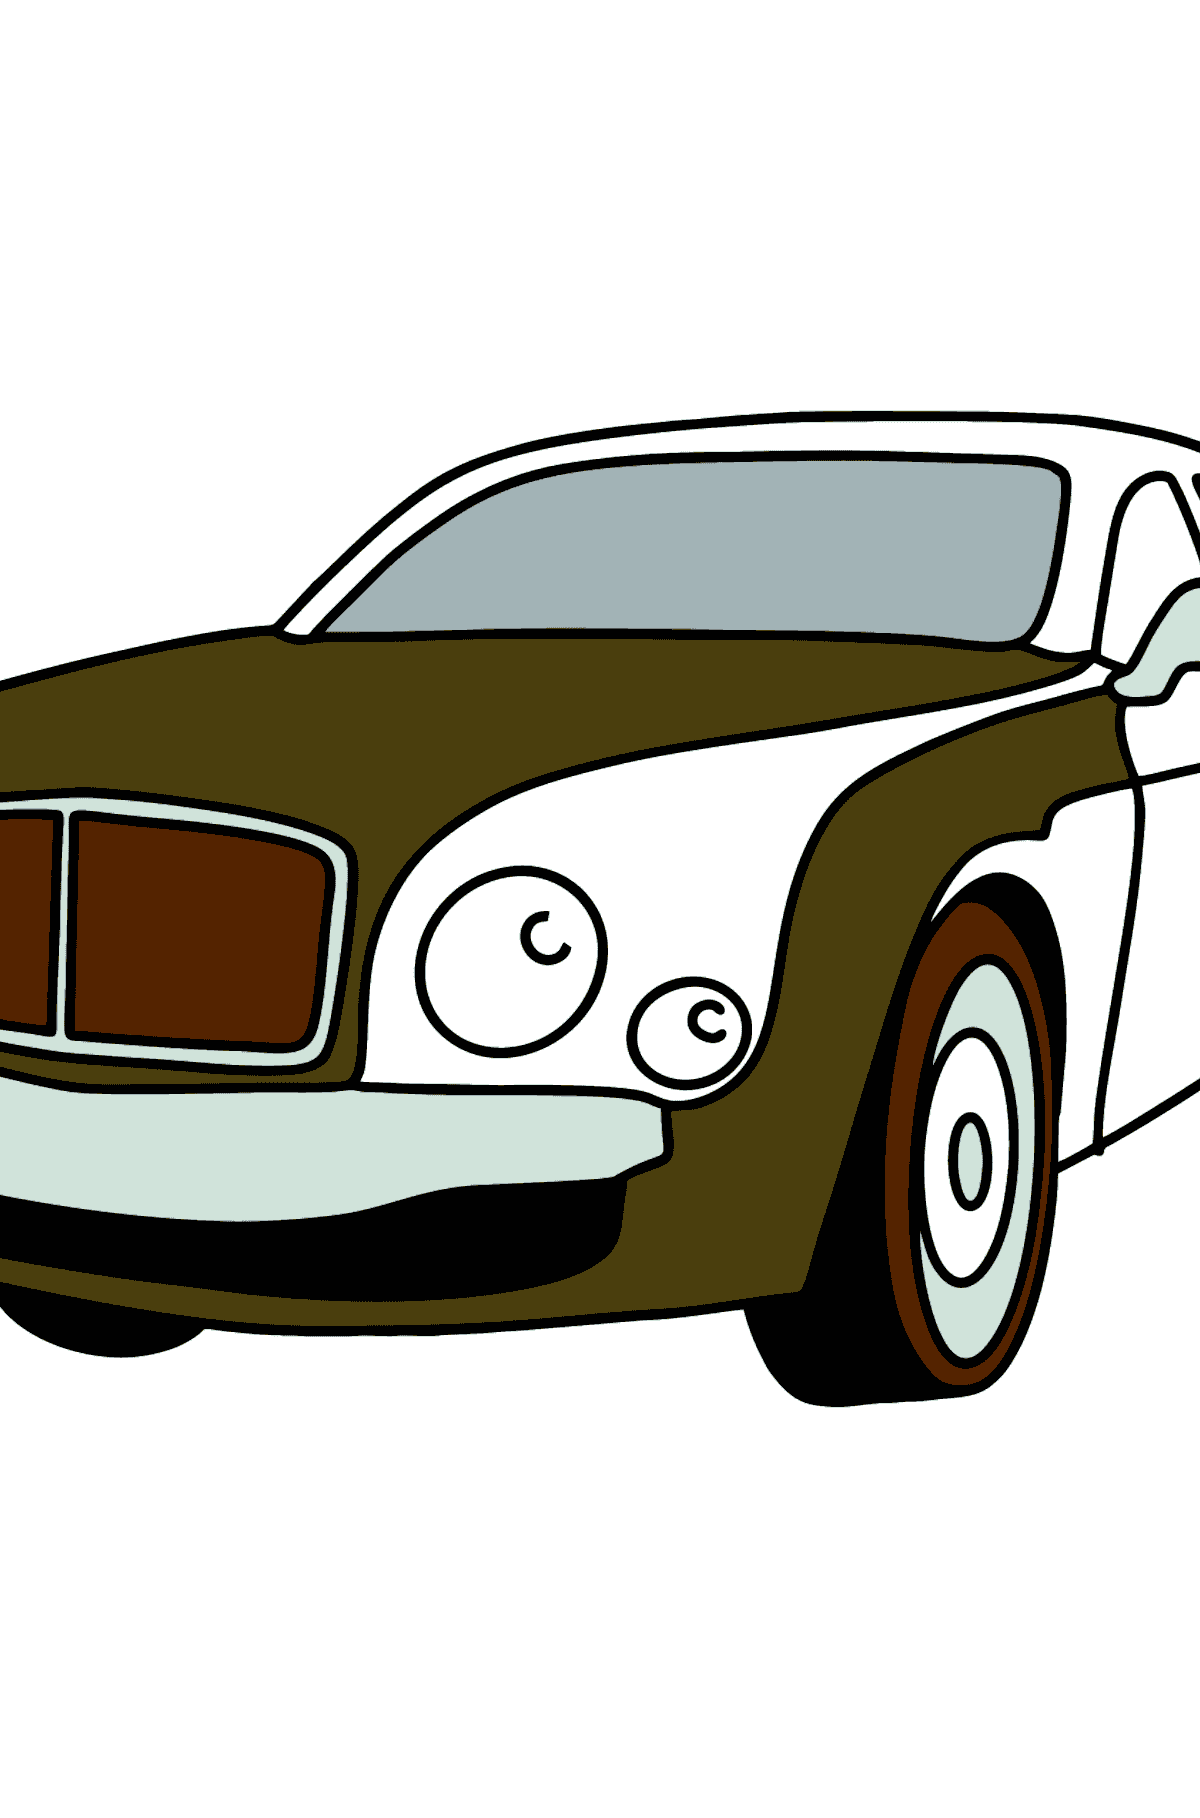 Bentley Car Coloring Page - Coloring Pages for Kids